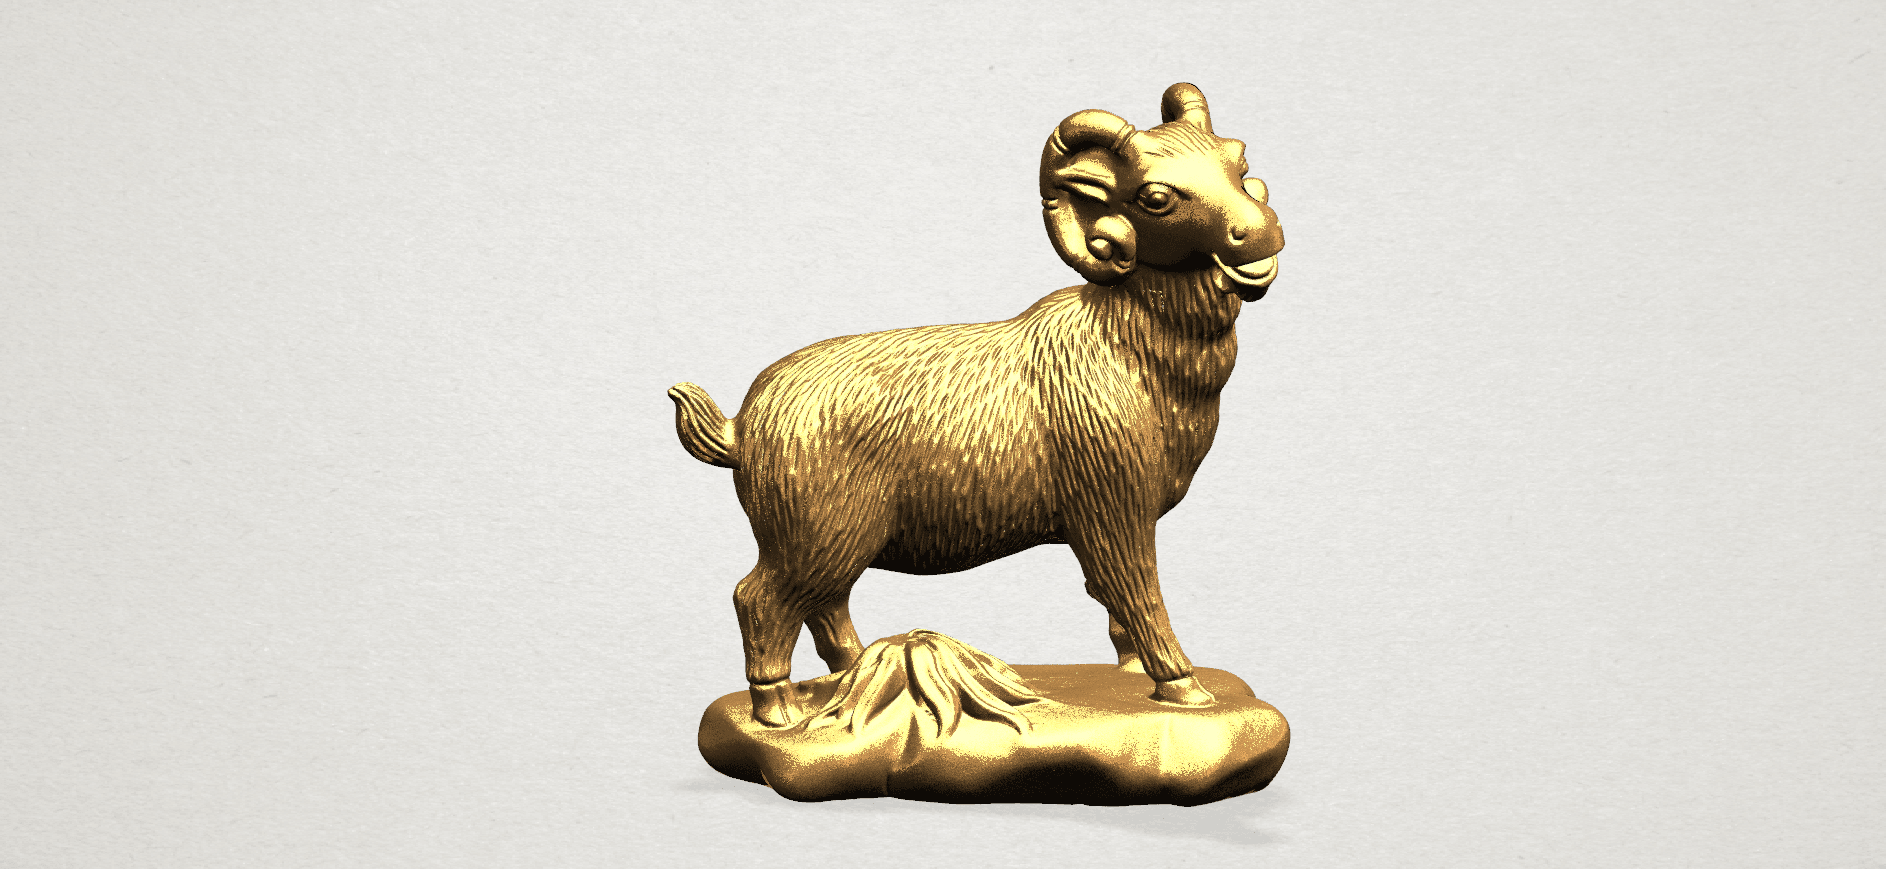 Chinese Horoscope08-B02.png Download free STL file Chinese Horoscope 08 Goat • Model to 3D print, GeorgesNikkei